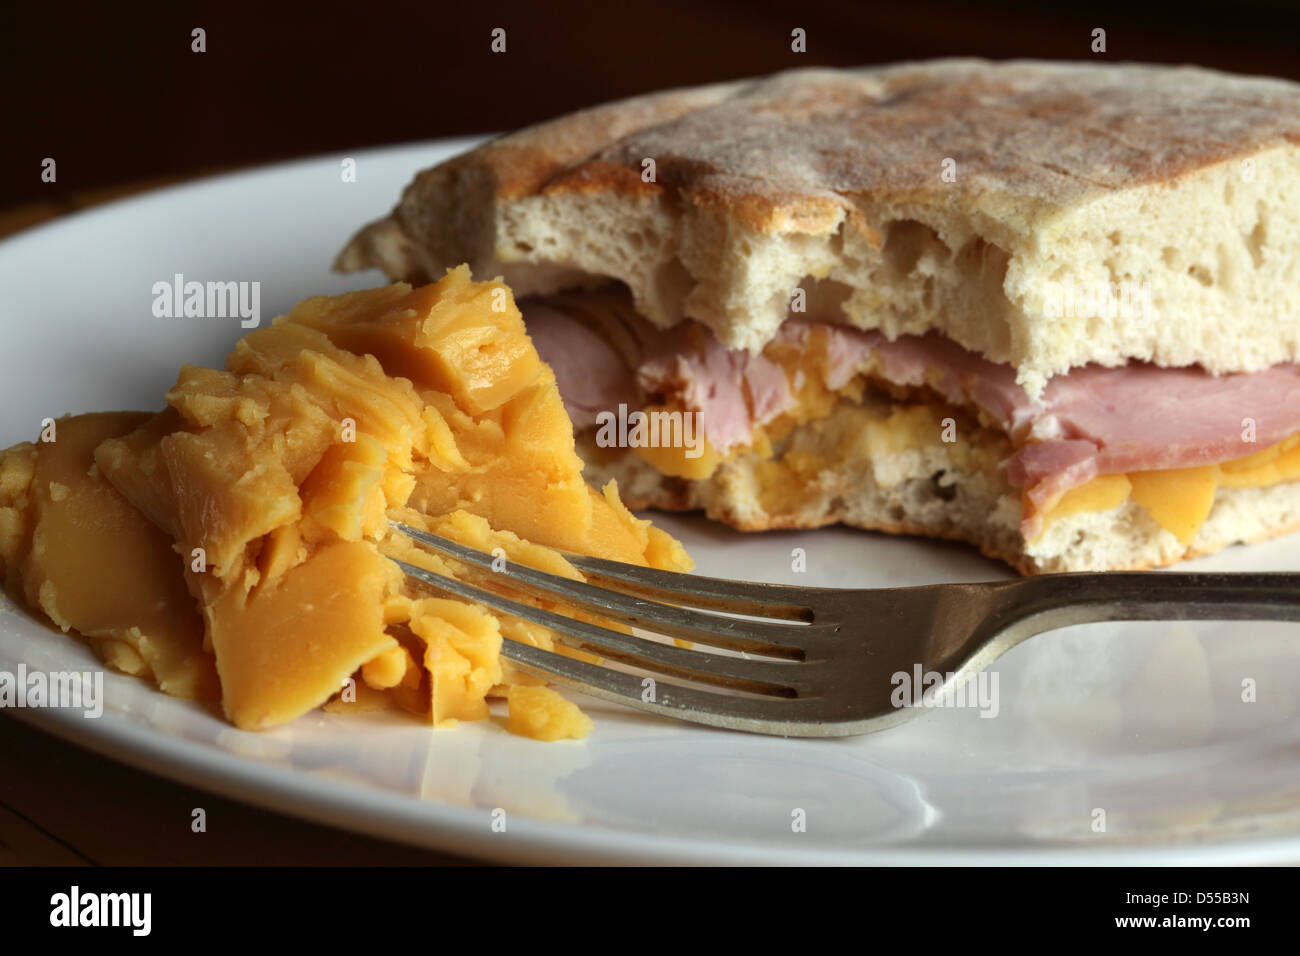 A pease pudding and ham sandwich is served in stottie cake and a side serving of pease pudding. - Stock Image